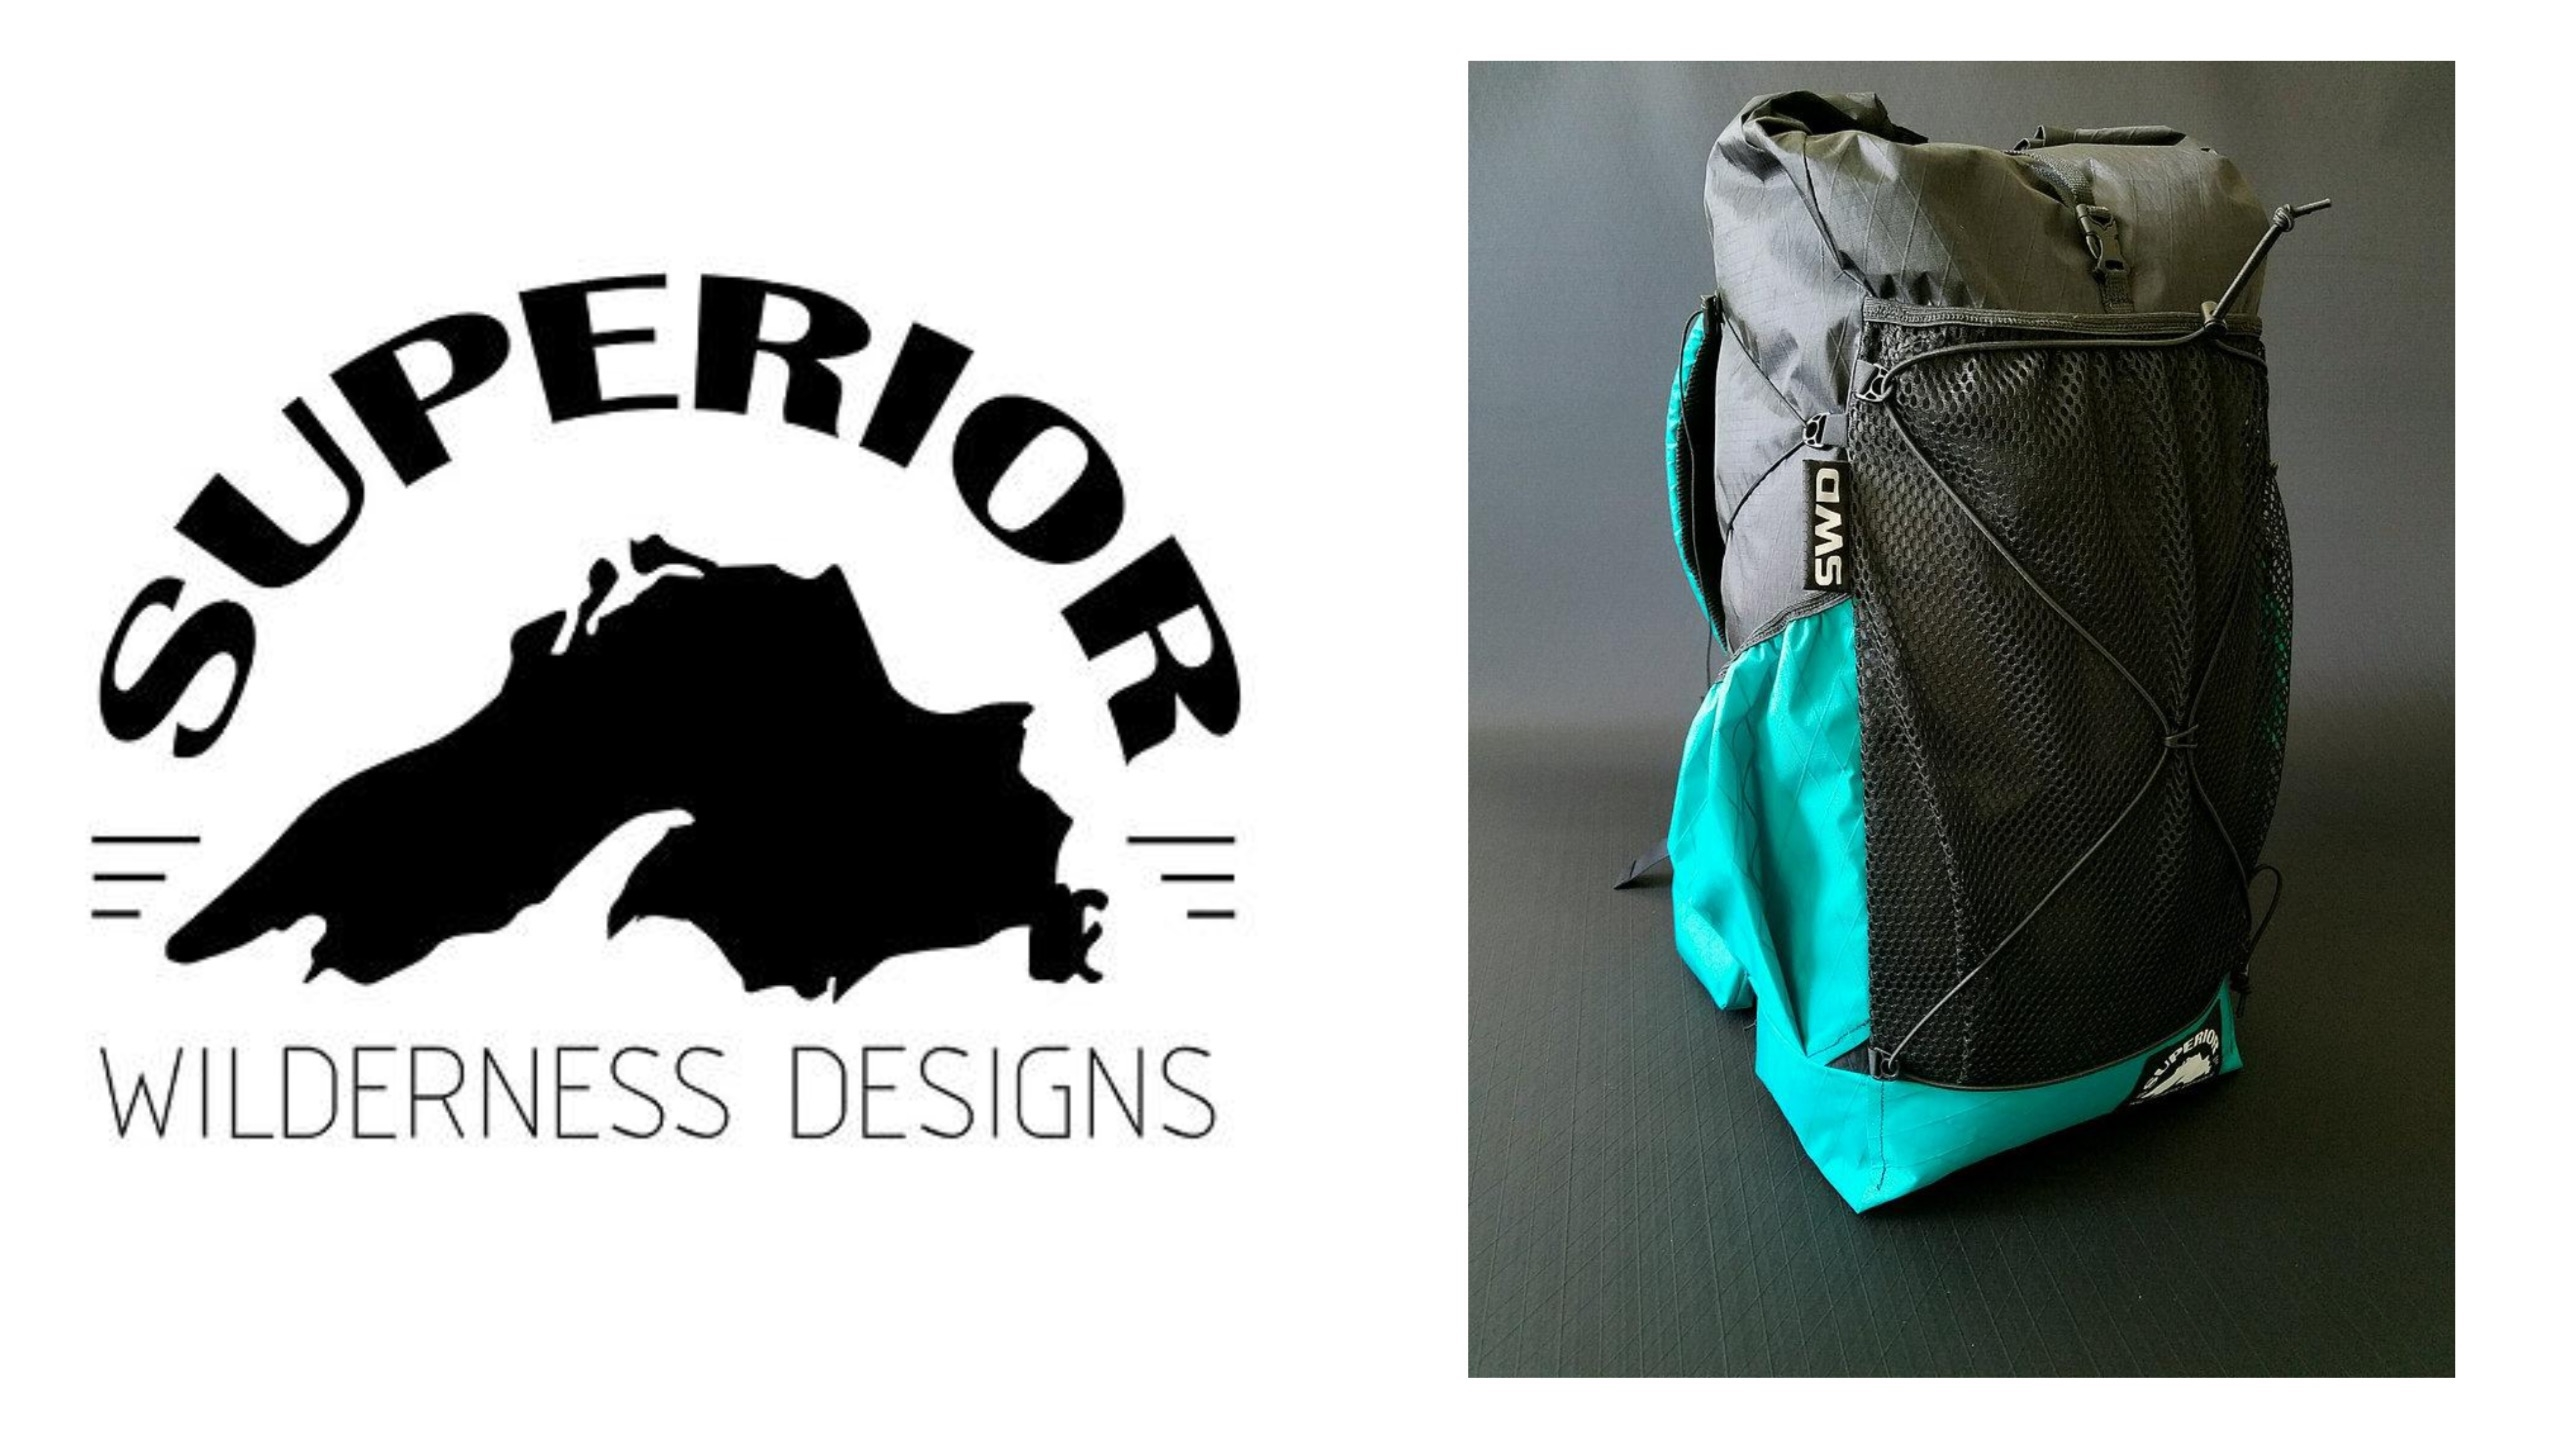 29e6c1e1a6 Superior Wilderness Designs  UL Backpacks You Should Know About - The Trek